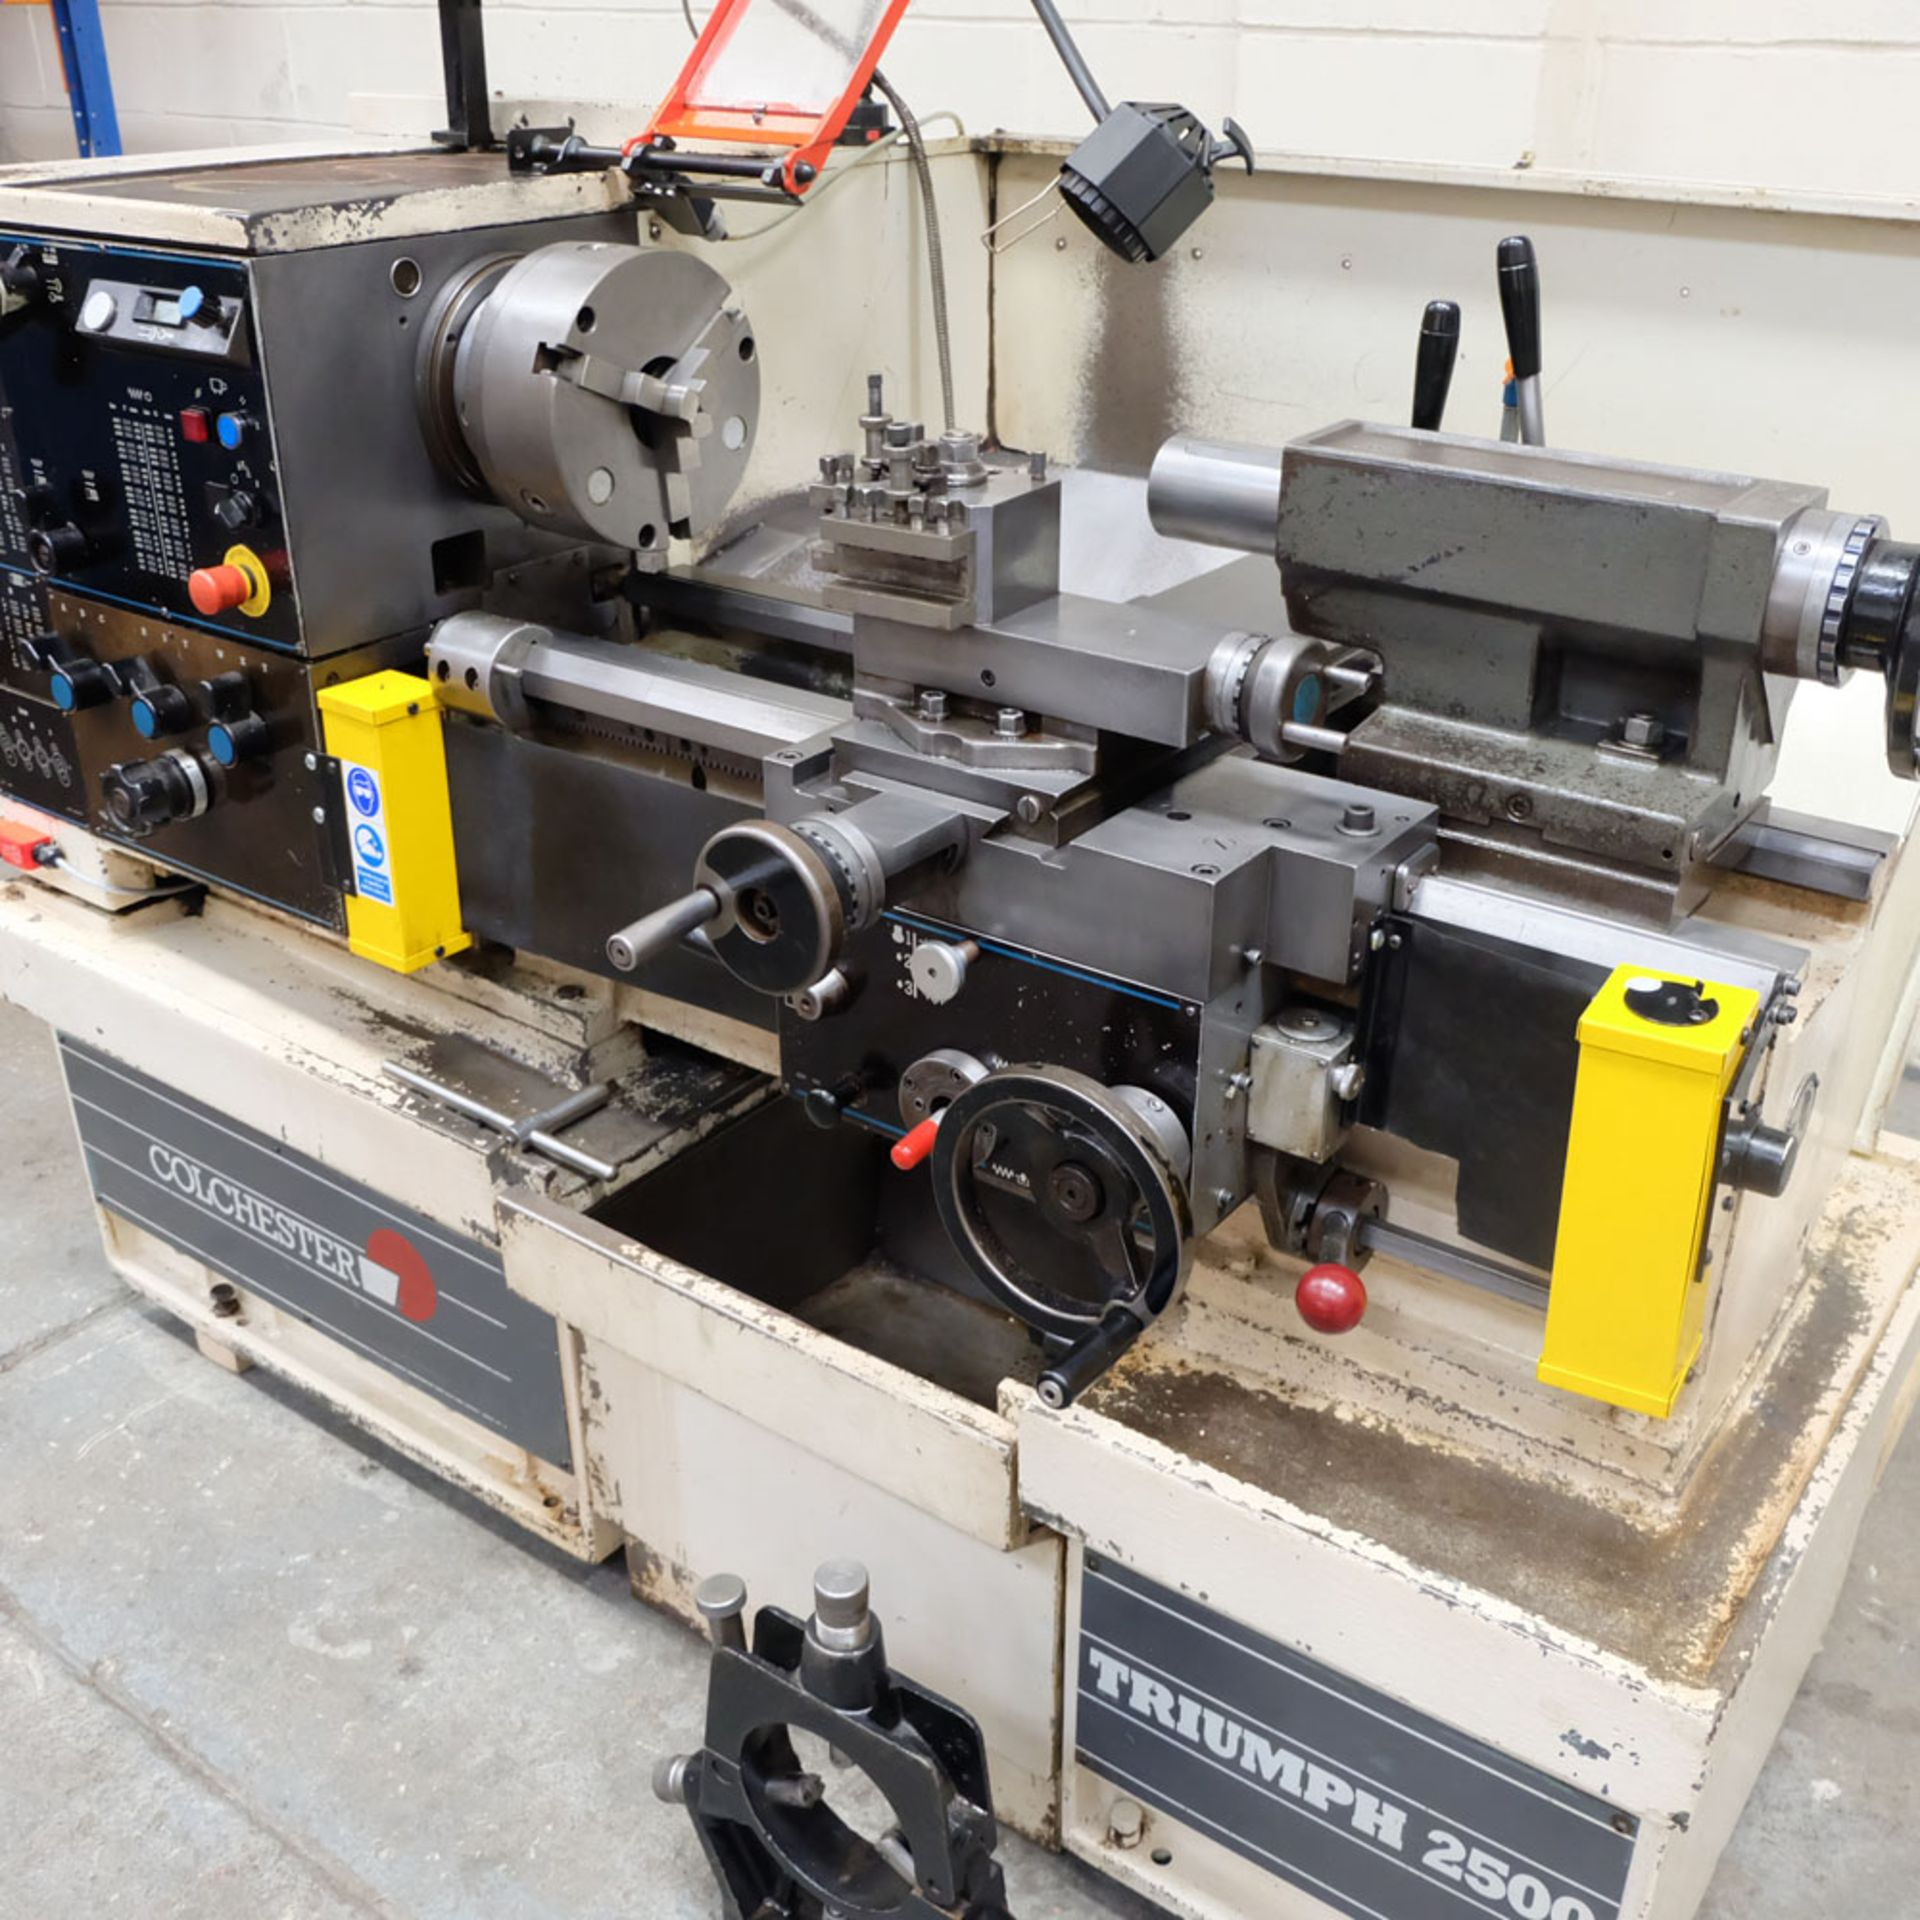 Colchester Triumph V5 2500 Variable Speed Centre Lathe. Swing Over Bed: 400mm. - Image 2 of 12